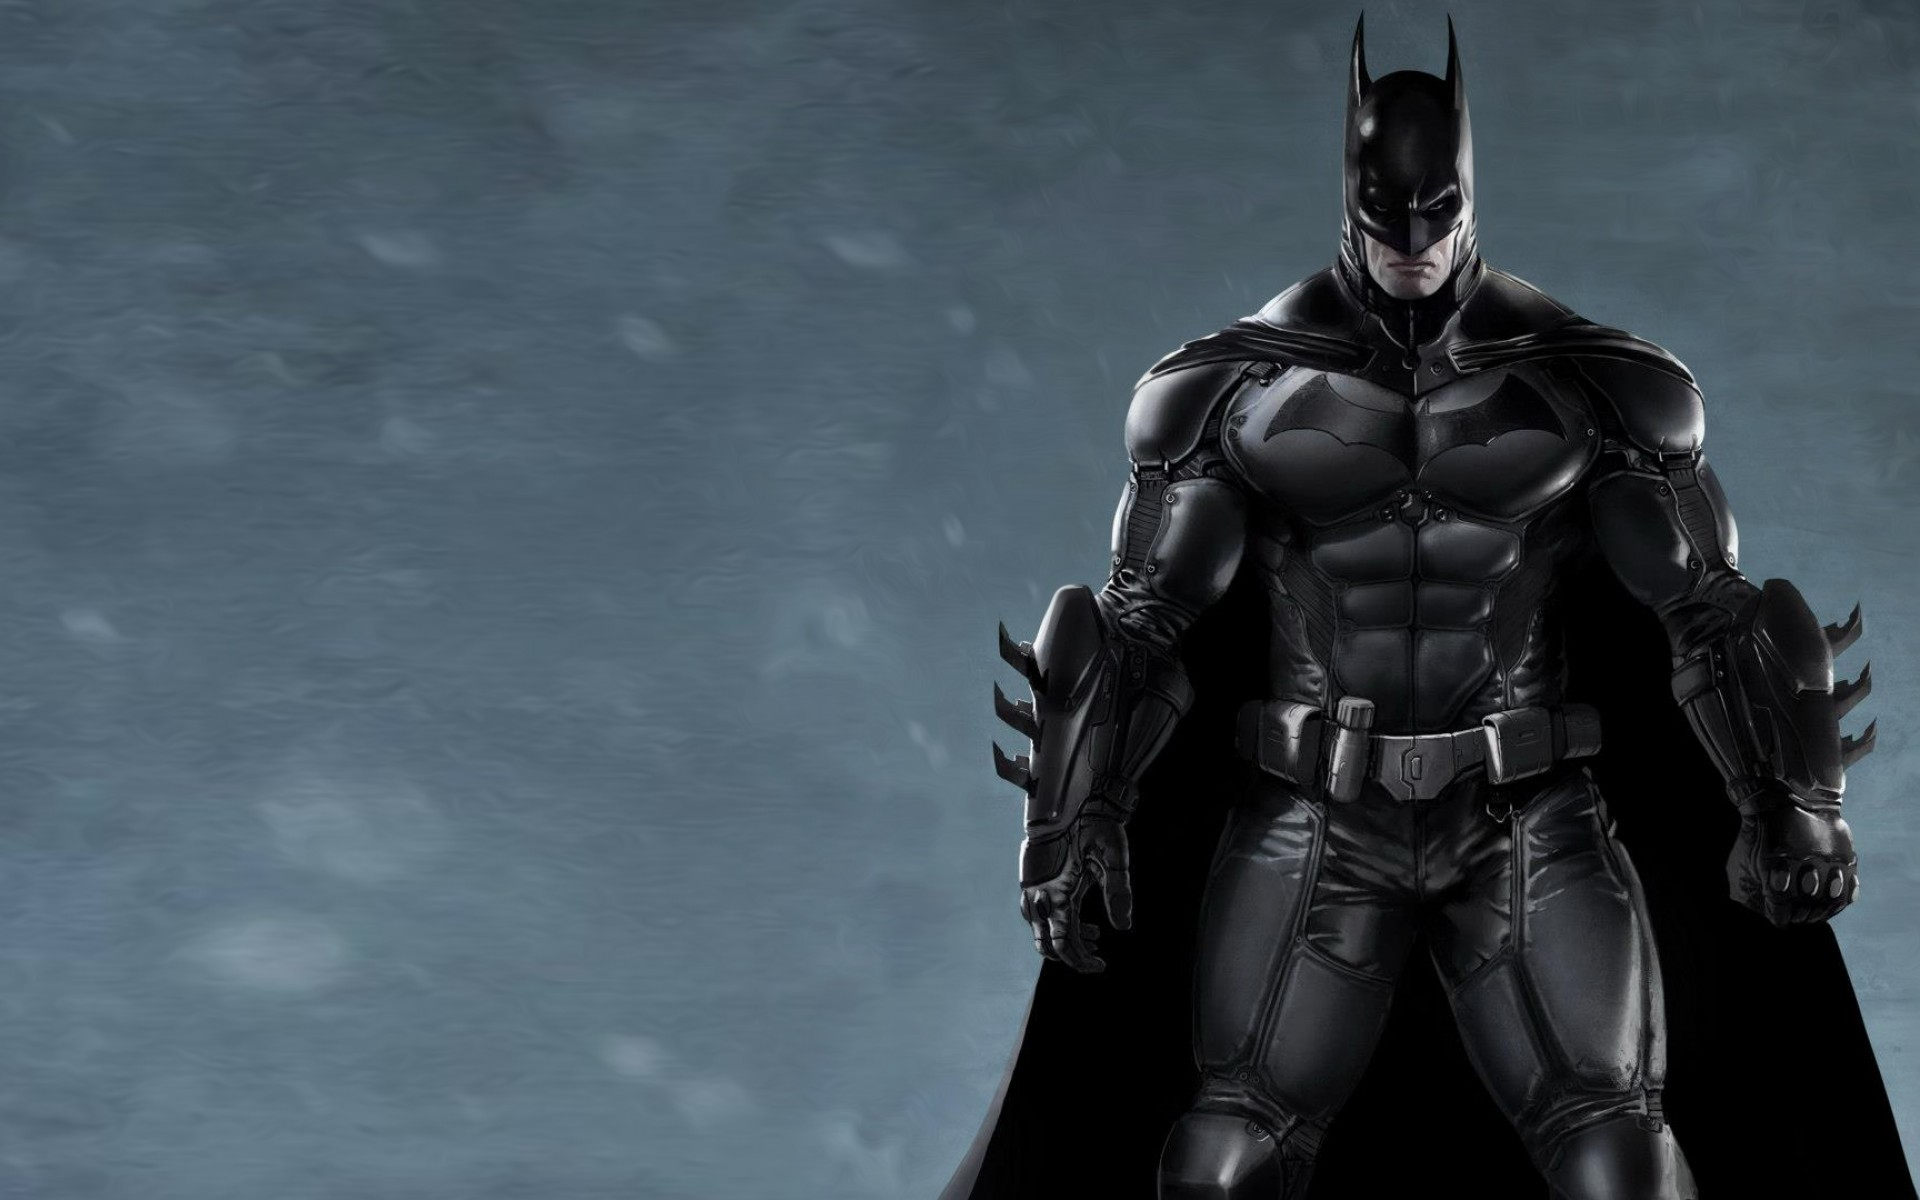 Cool Batman Pose Wallpaper Movie 6141 Wallpaper Wallpaper Screen 1920x1200